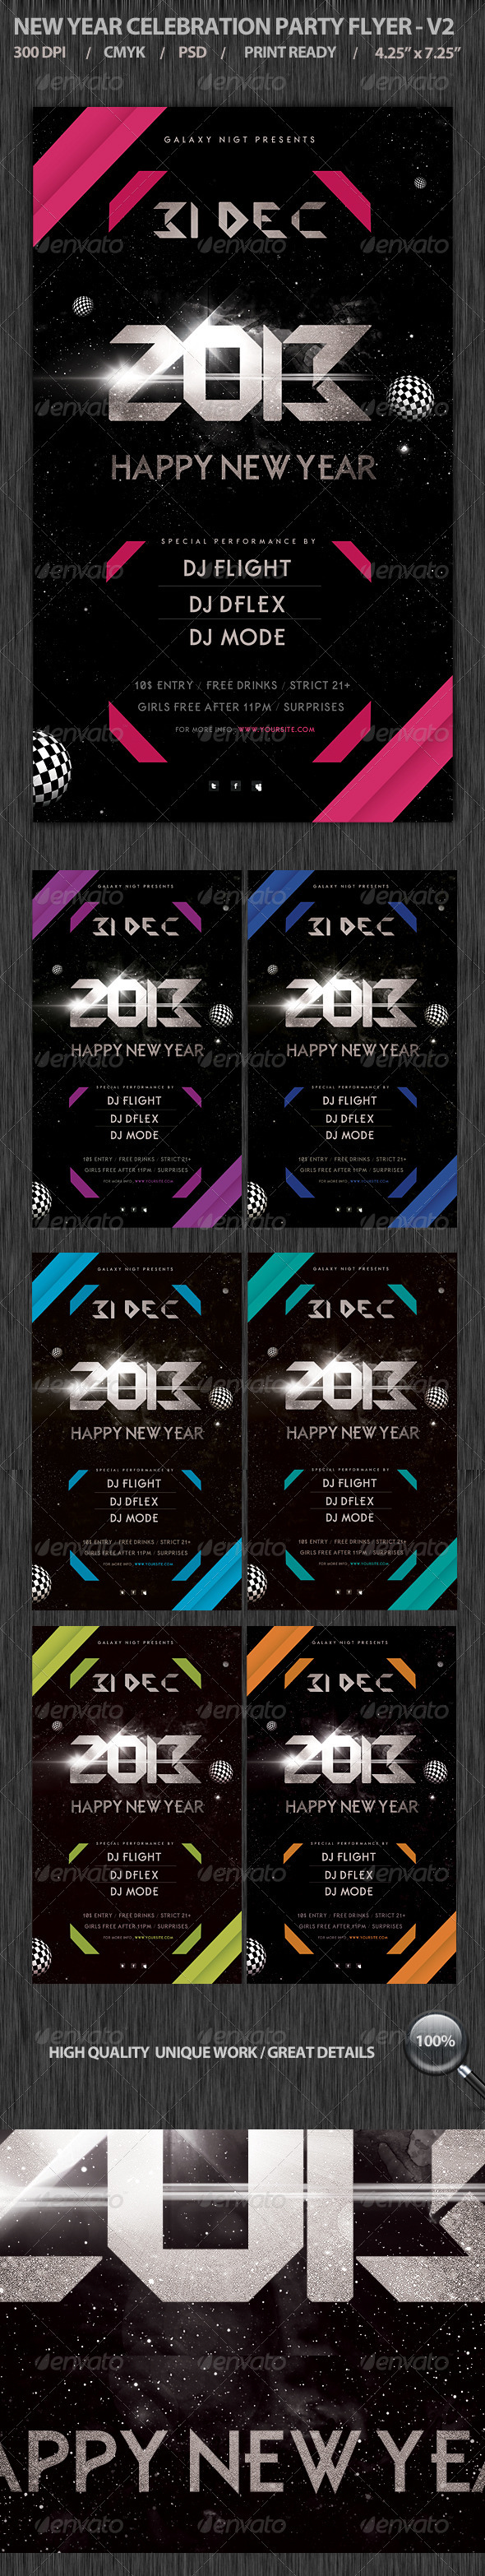 New Year Eve Party Flyer - V2 - Clubs & Parties Events